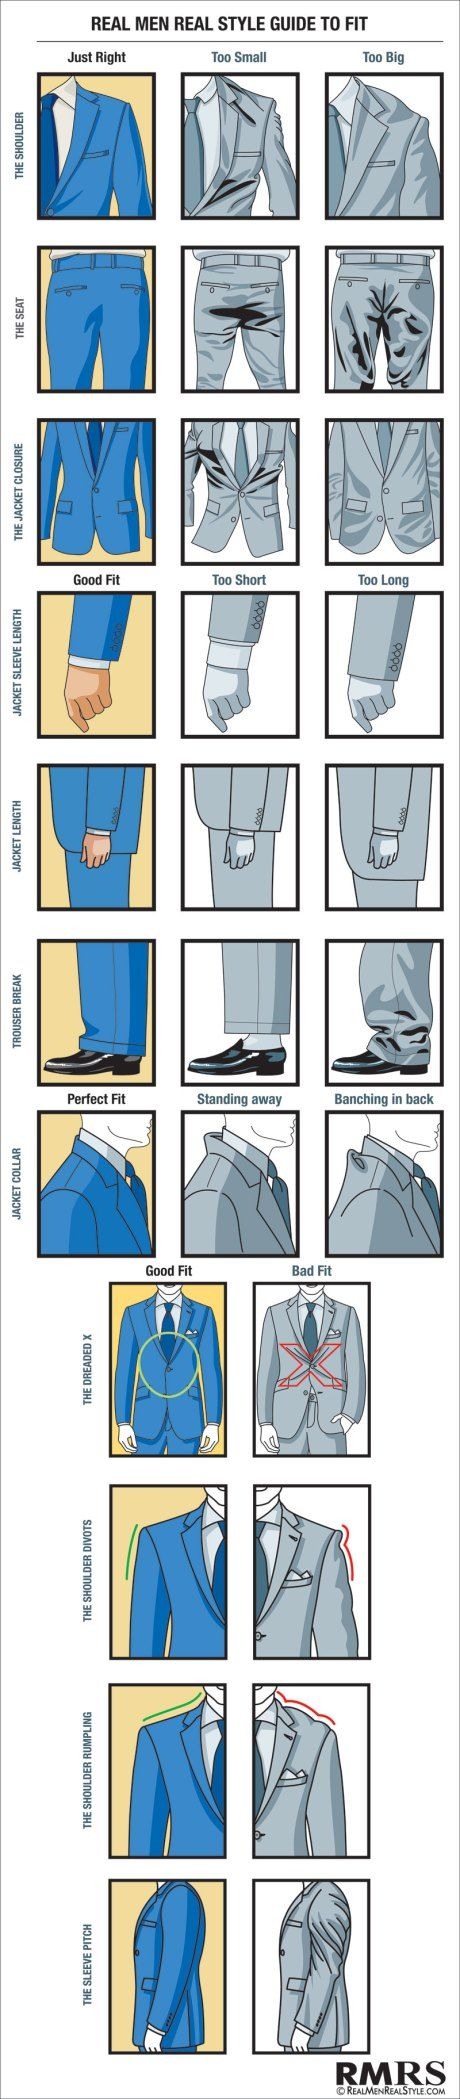 How A Man\'s Suit Should Fit | Pinterest | Wedding, Weddings and ...